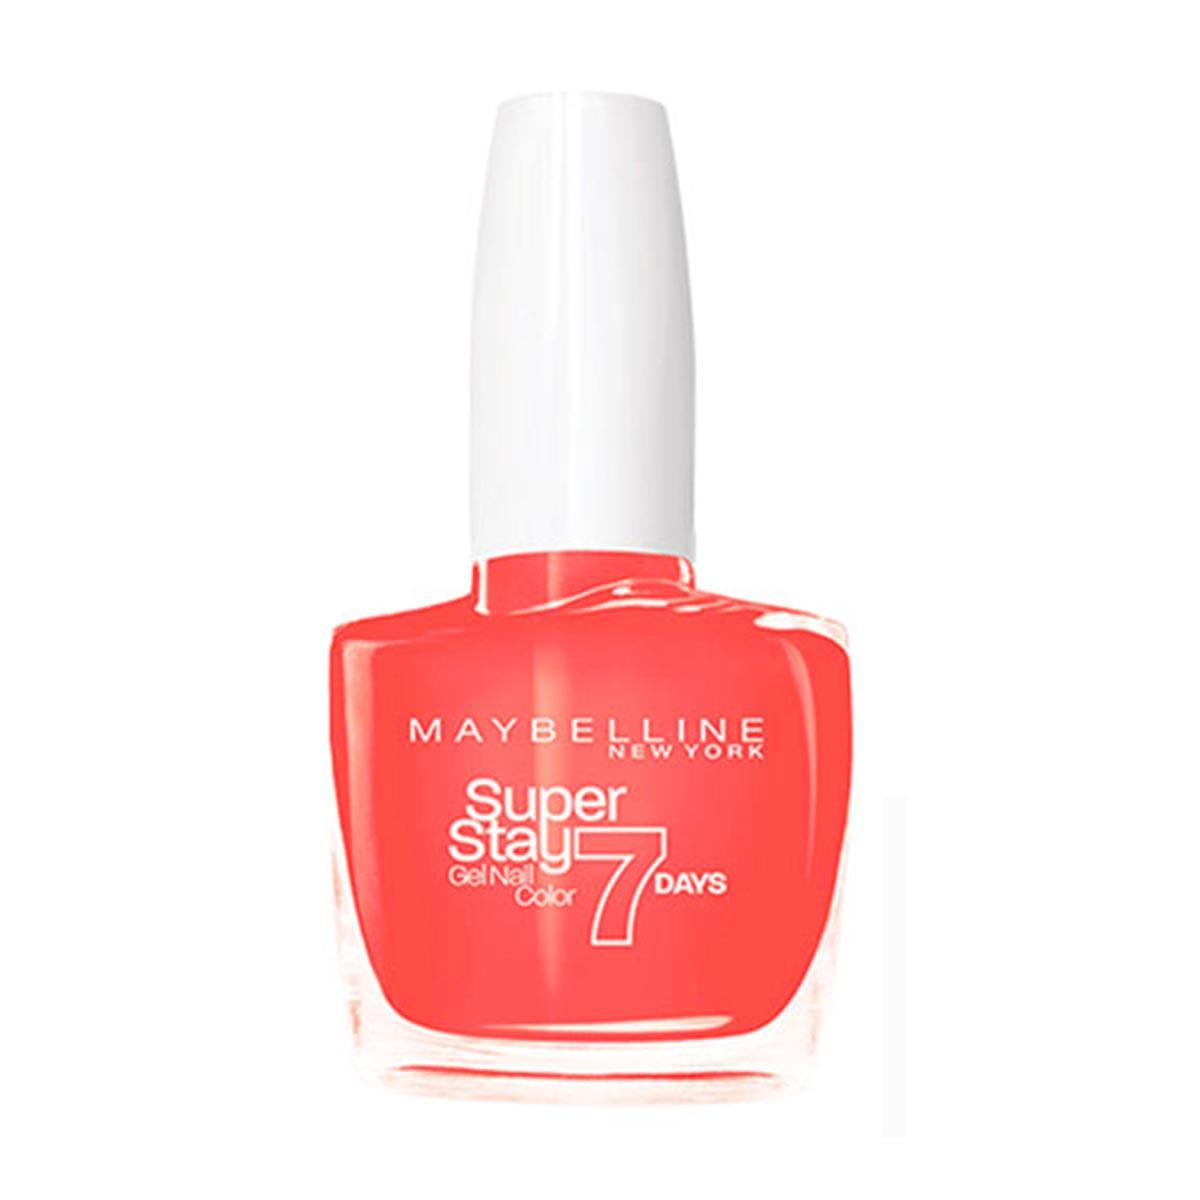 Maybelline Superstay Gel Nail Color 7 Days 460 Couture Orange